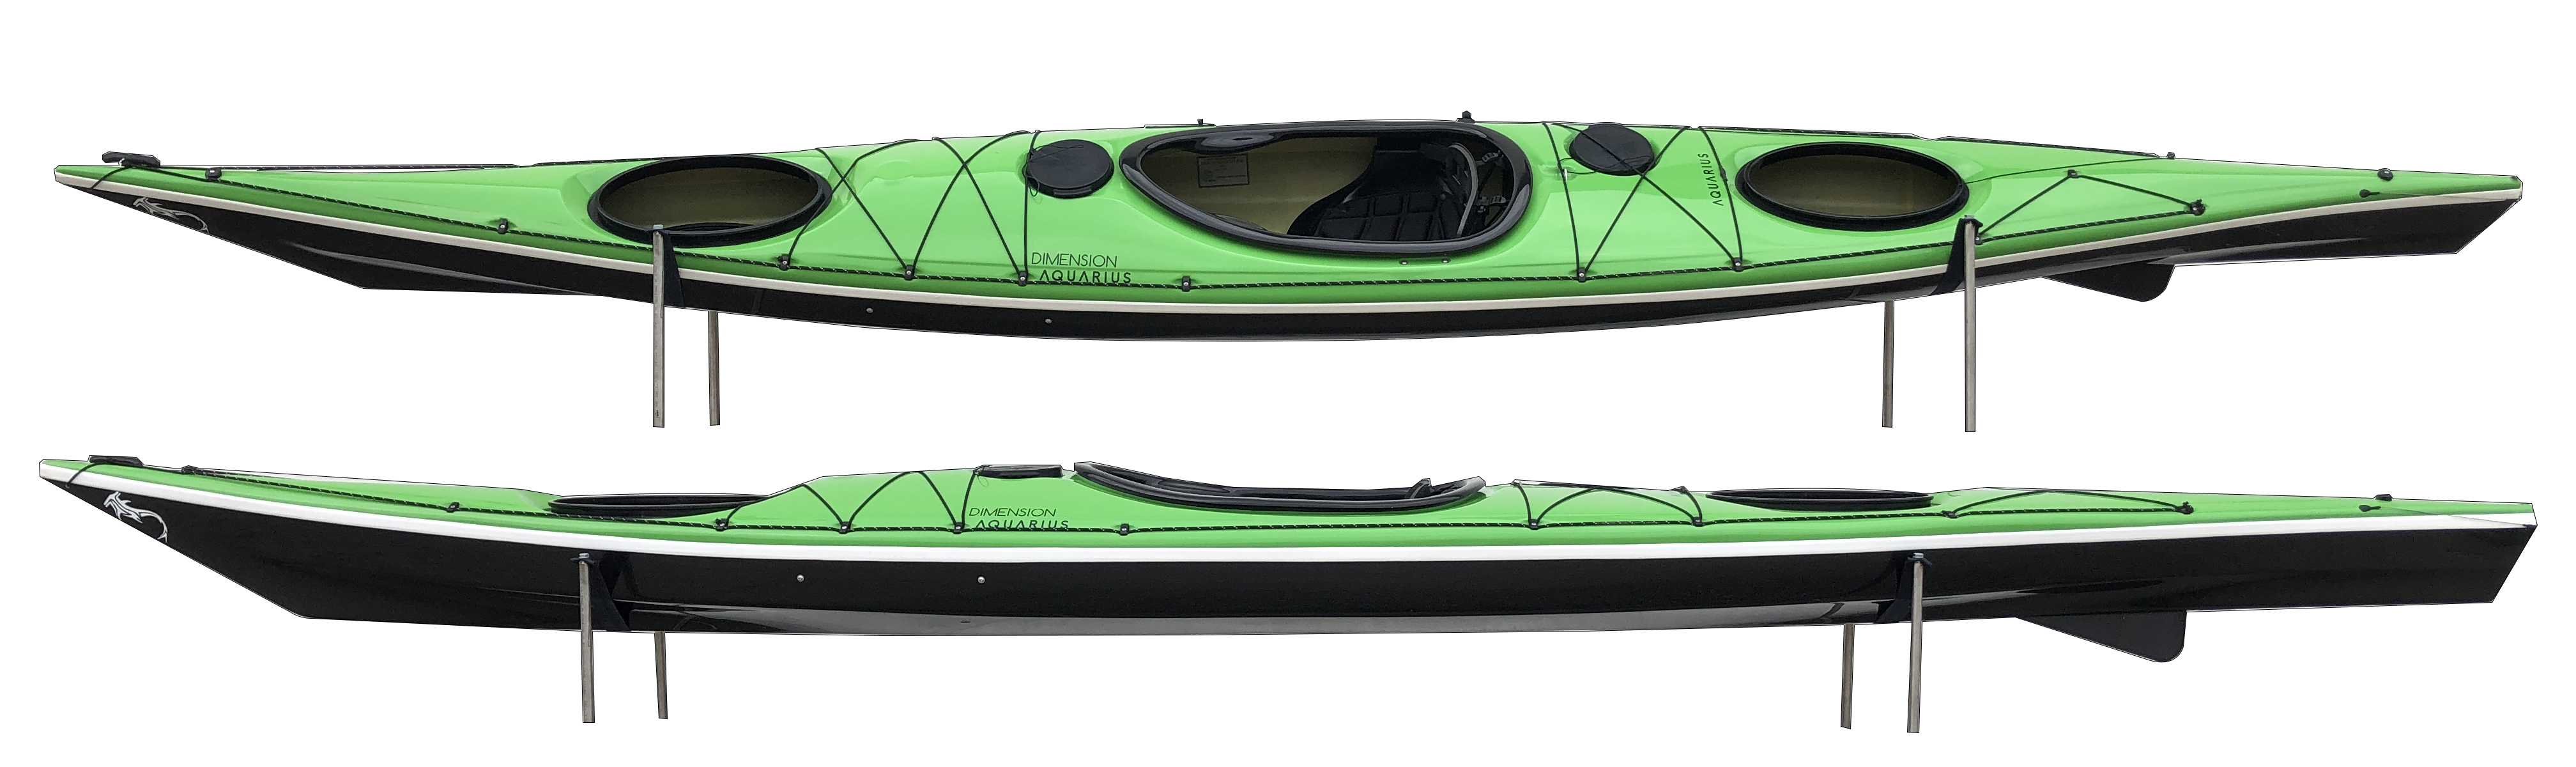 Aquarius Sea Dimension kayak